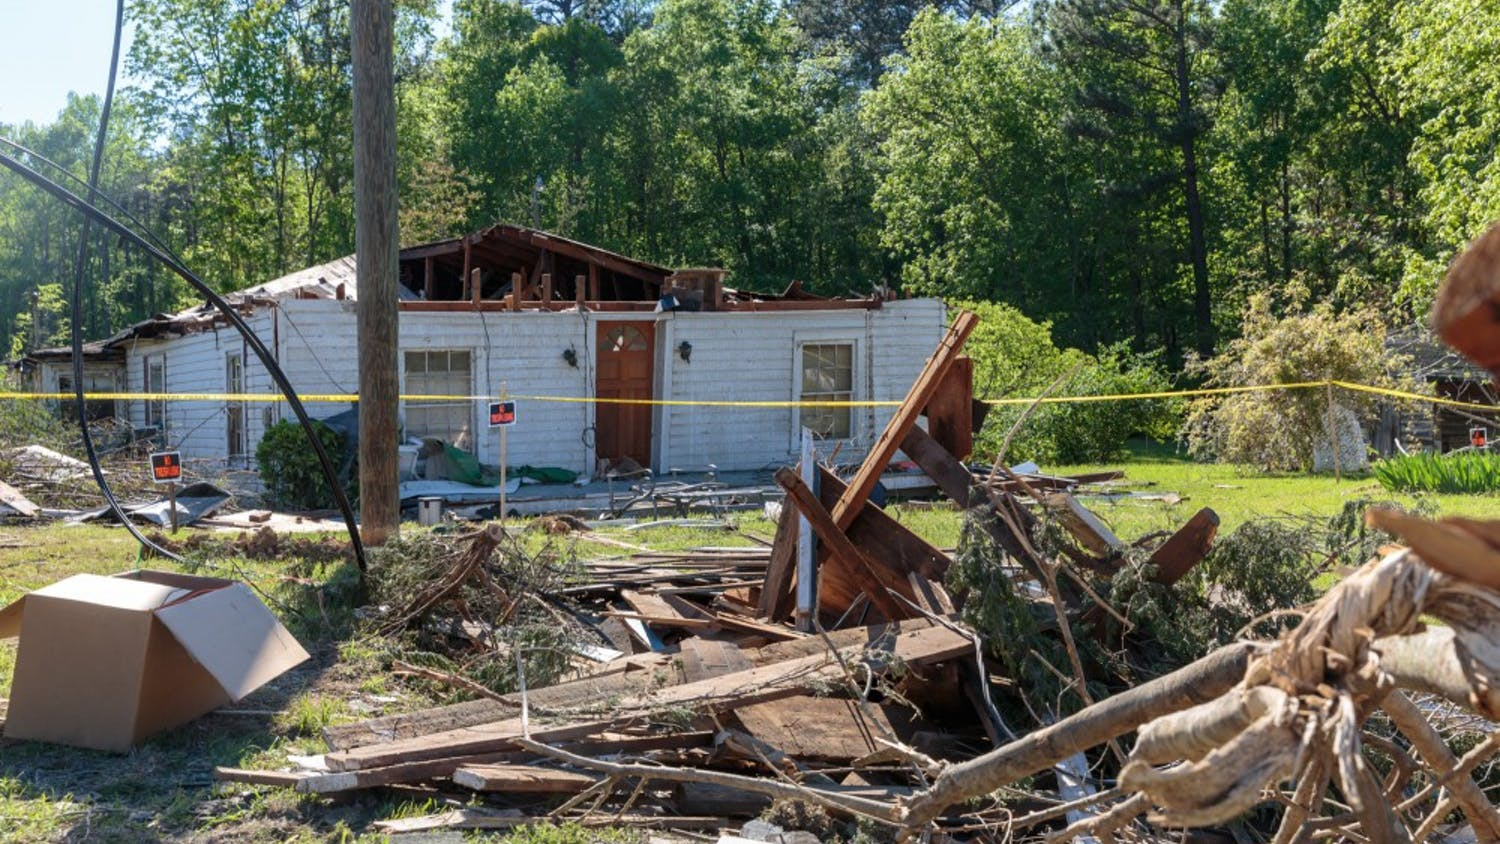 3209 Old Highway 86, Hillsborough NC lies damaged and abandoned after sustaining damage during the tornado Friday, April 19, 2019.